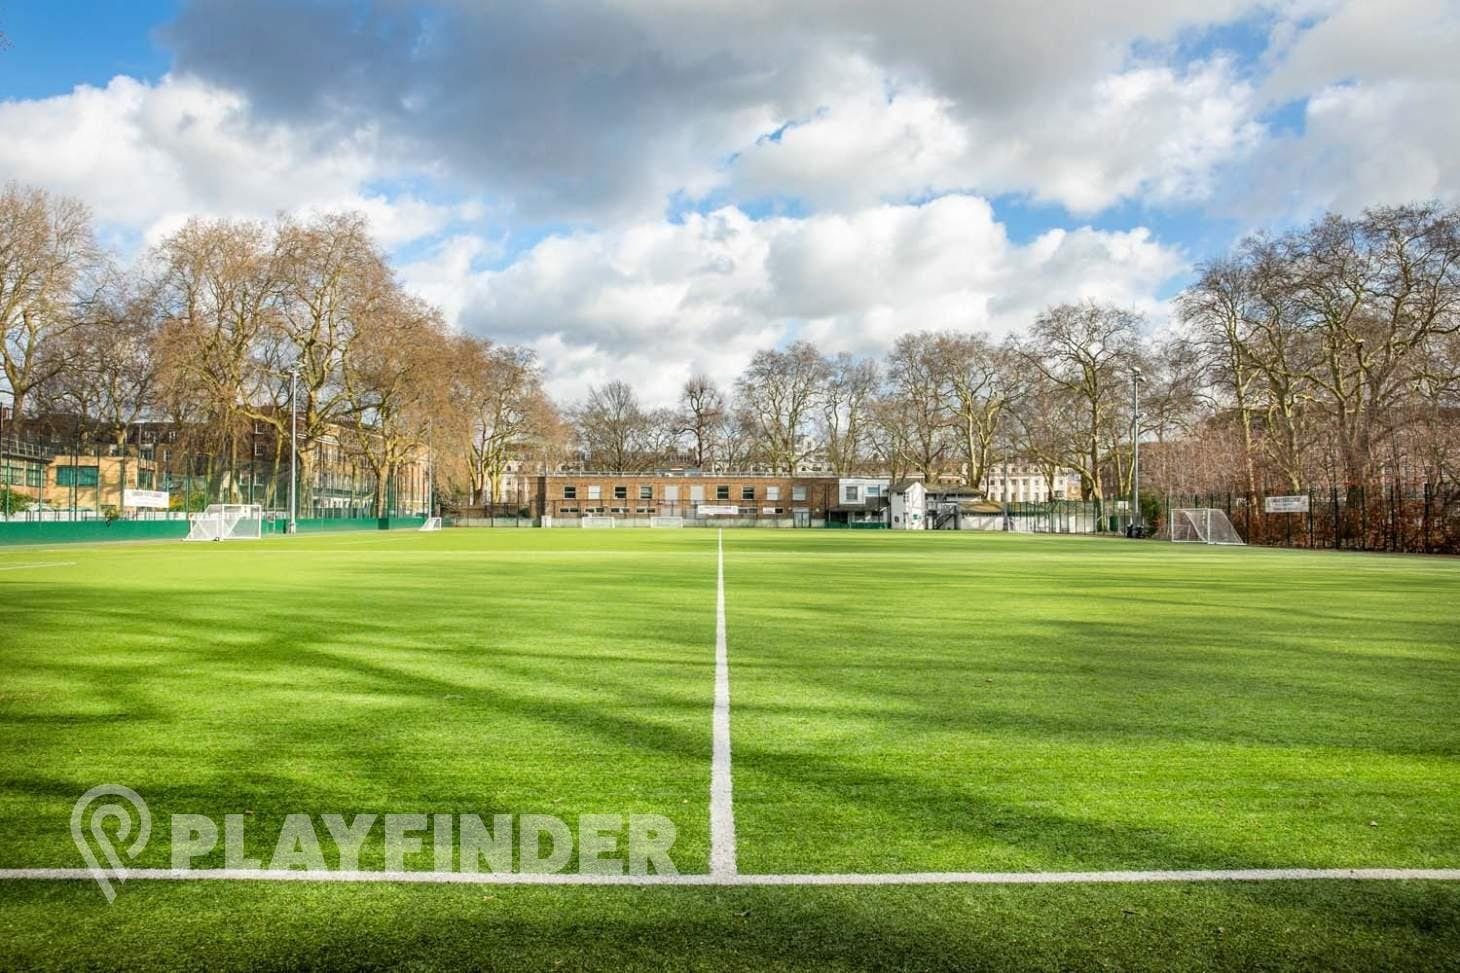 Coram's Fields 8 a side | 3G Astroturf football pitch